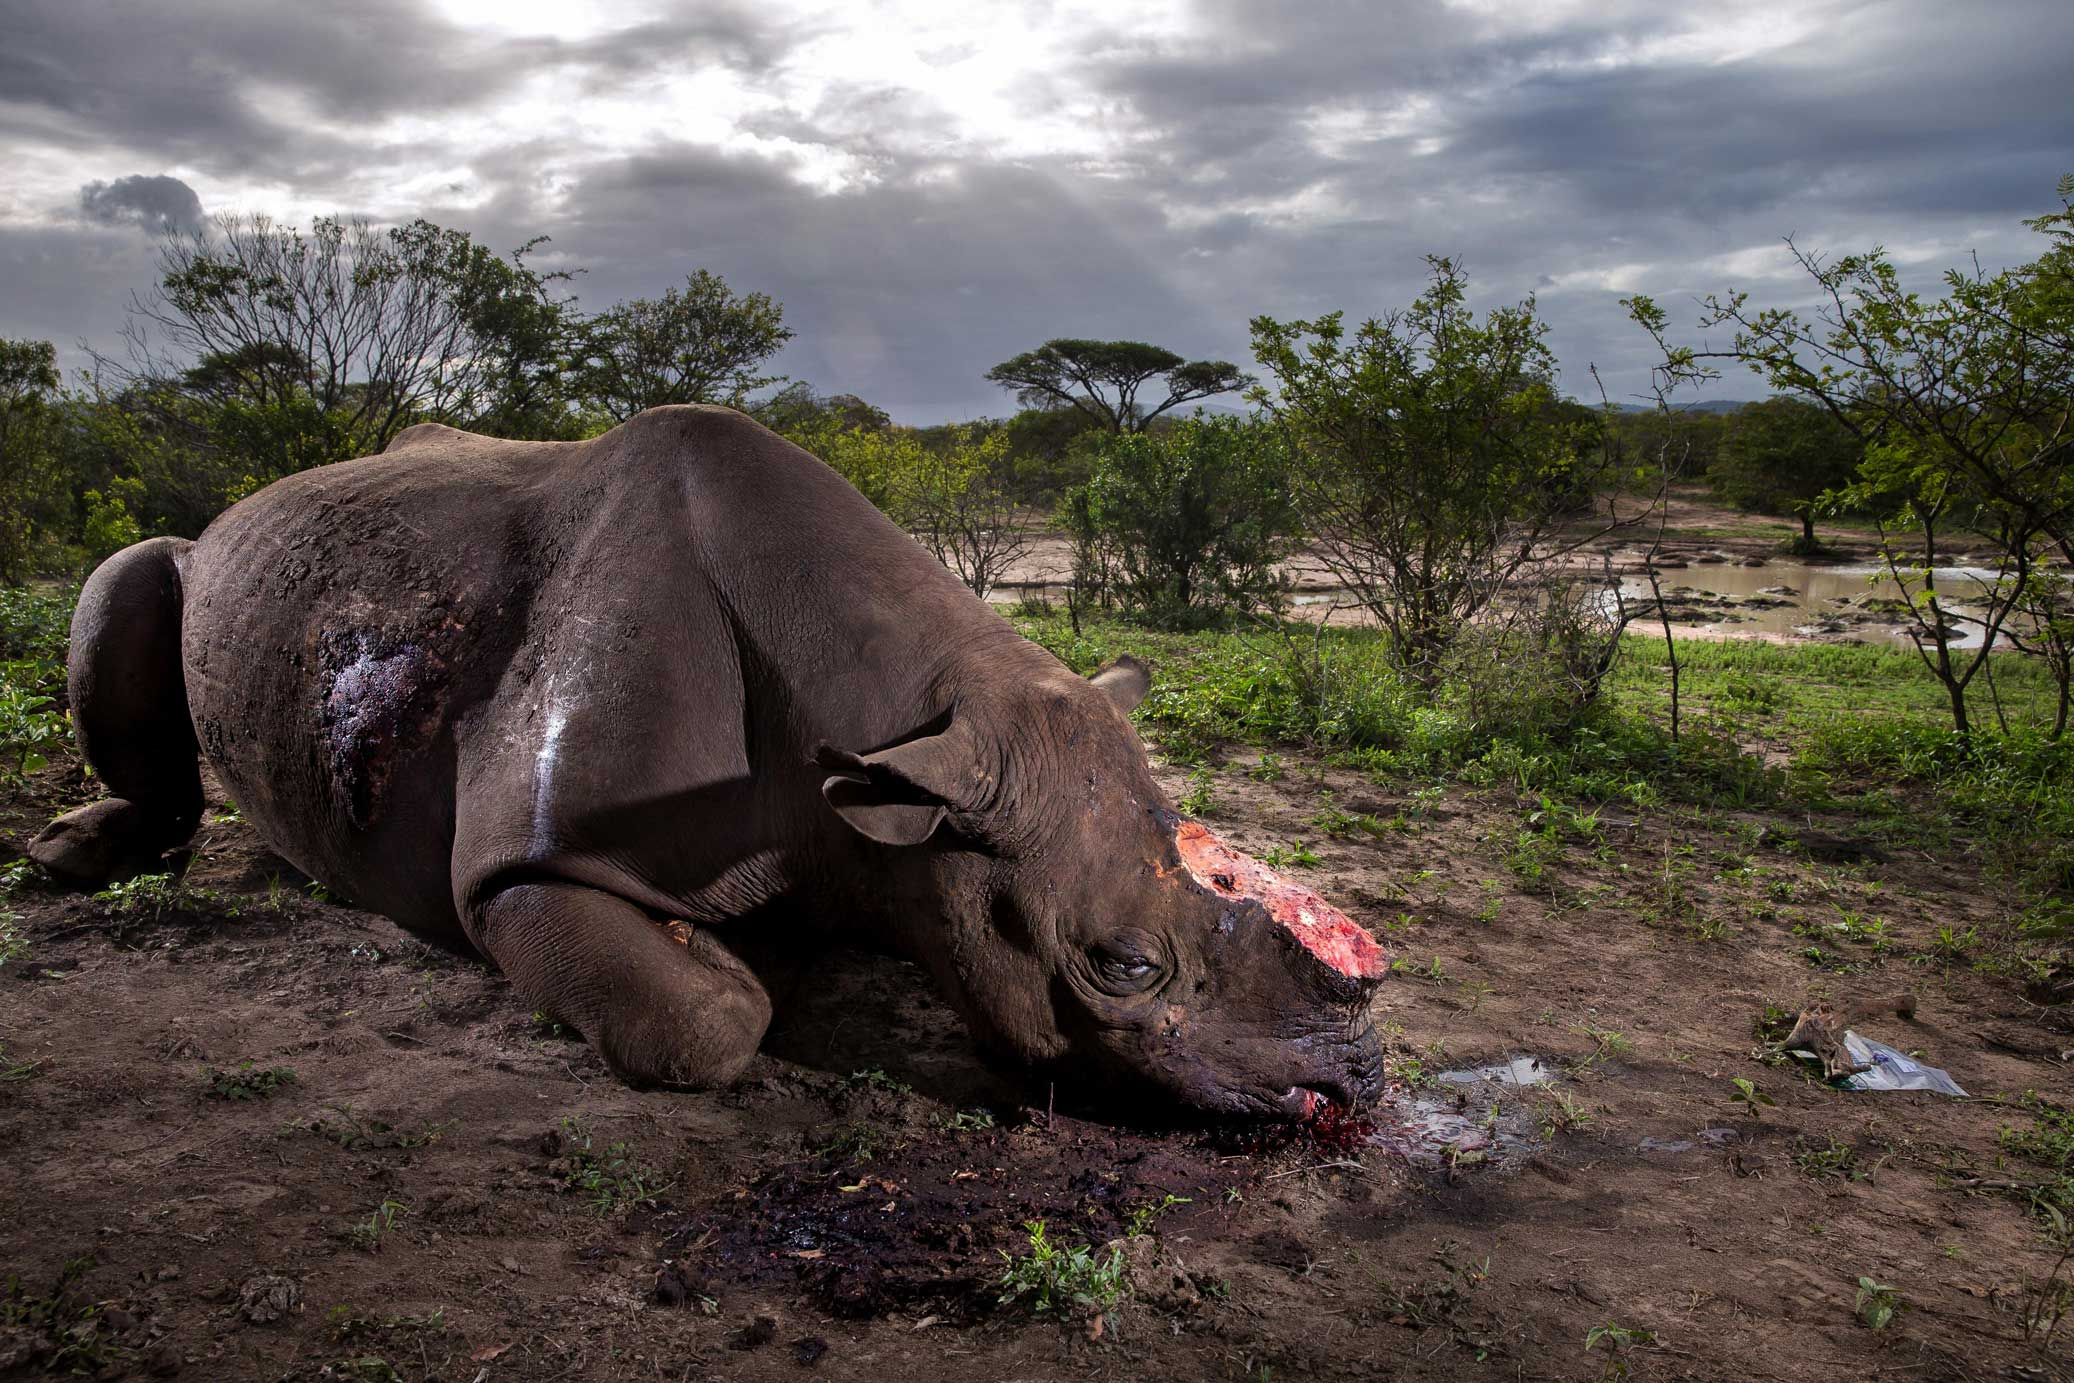 Credit: Brent Stirton, Getty Images for National Geographic Magazine